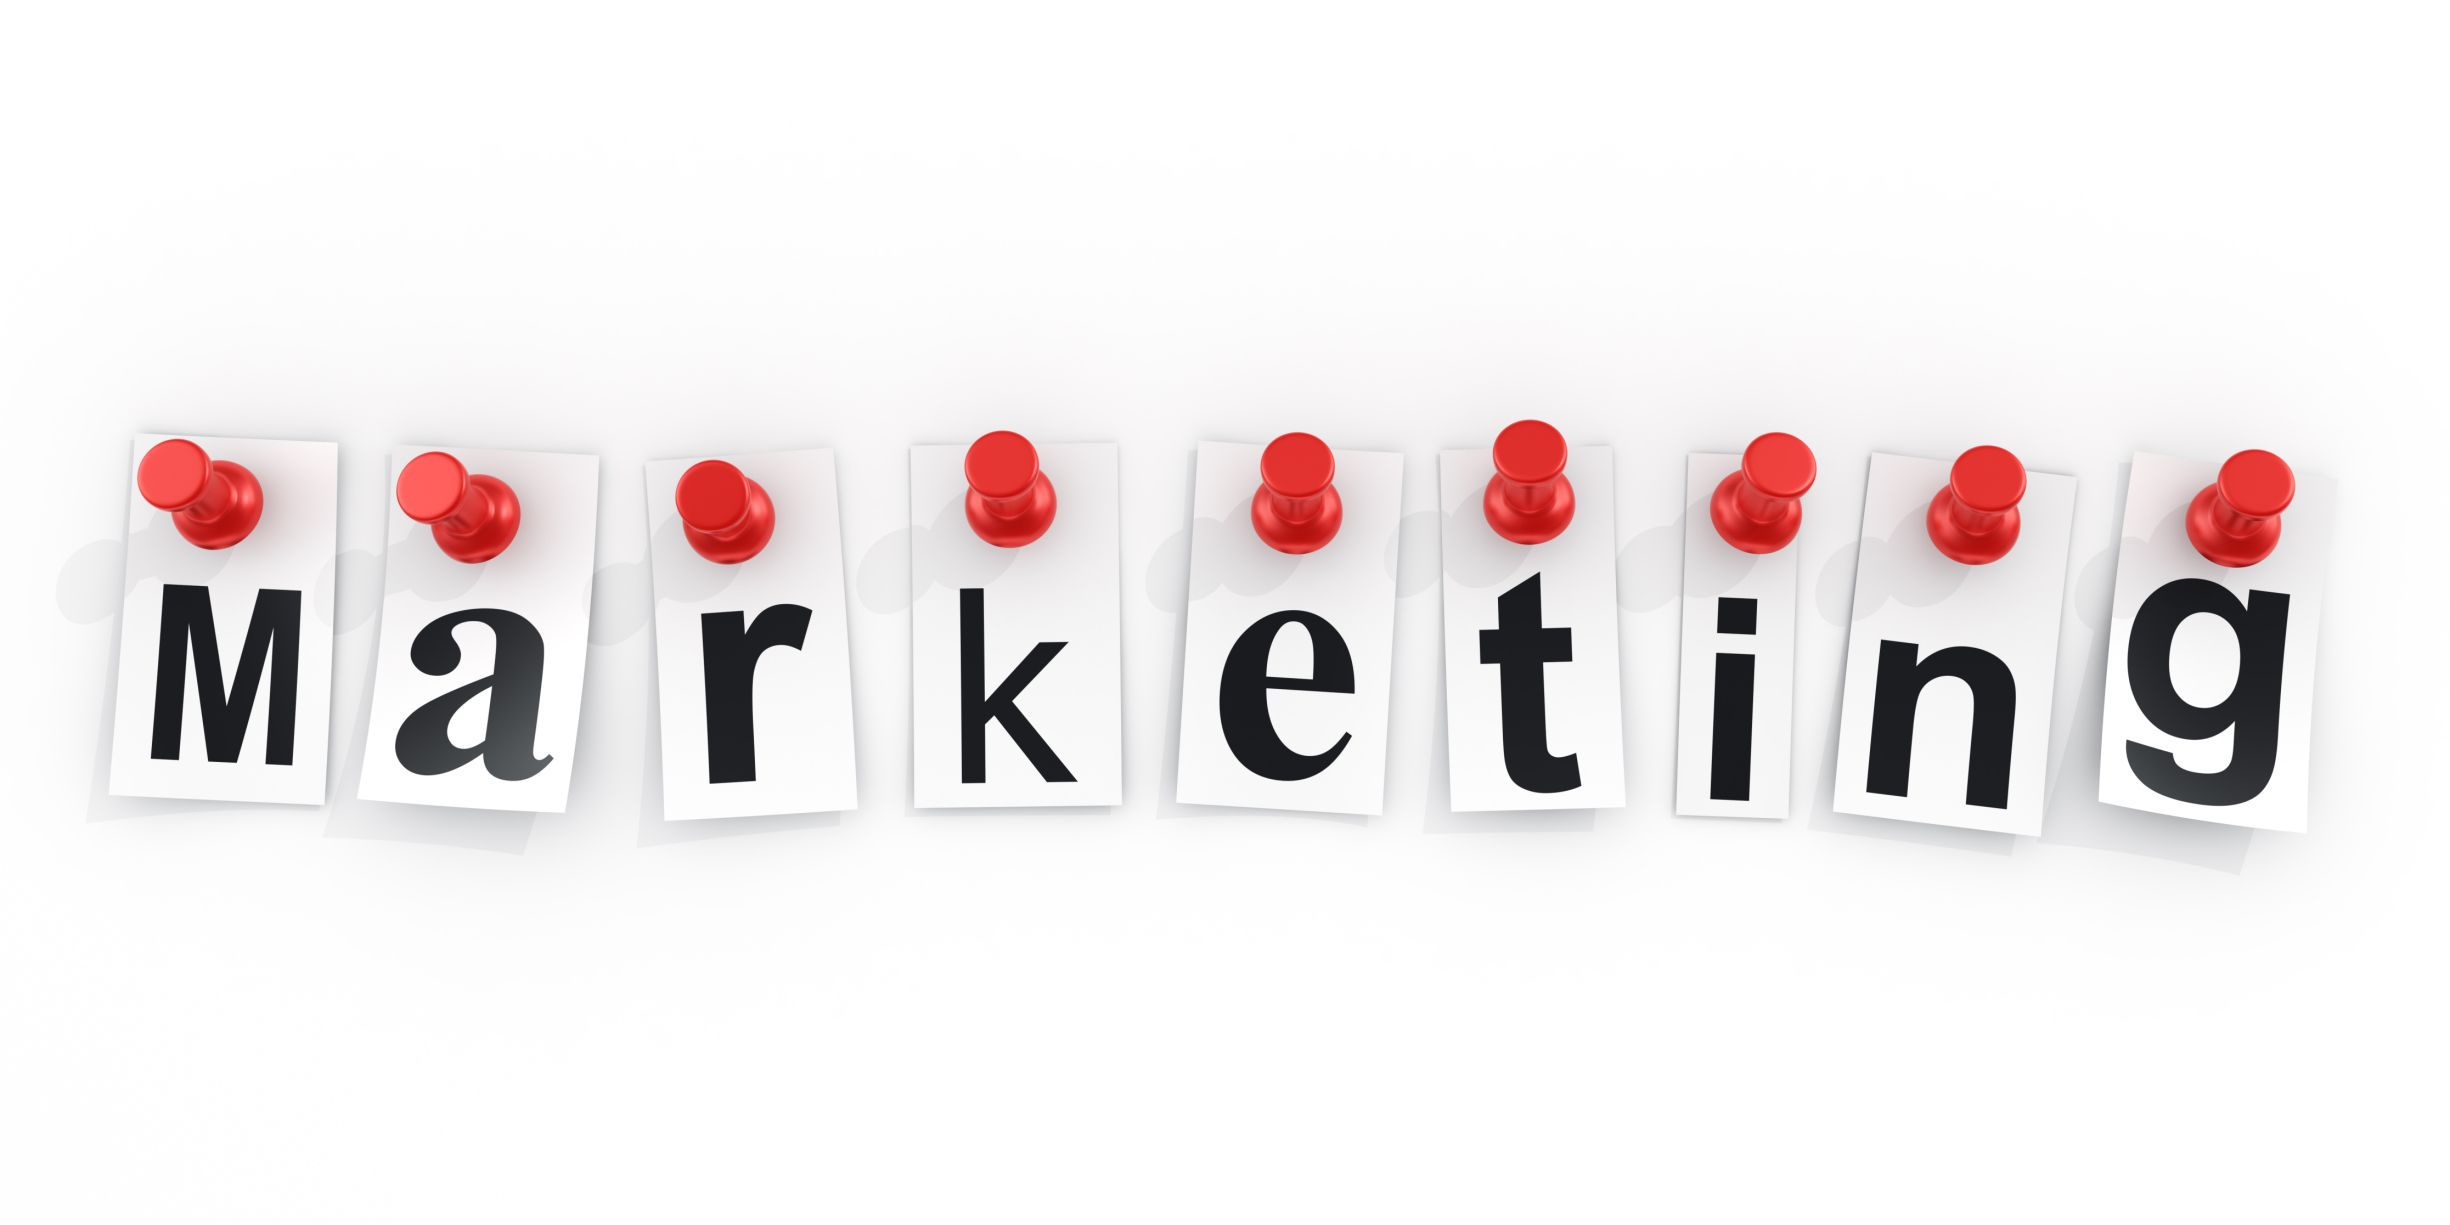 marketing strategy beach club Travel-related networking has proven to be an effective marketing strategy for resorts rush, morgan marketing ideas for resorts accessed april 11.